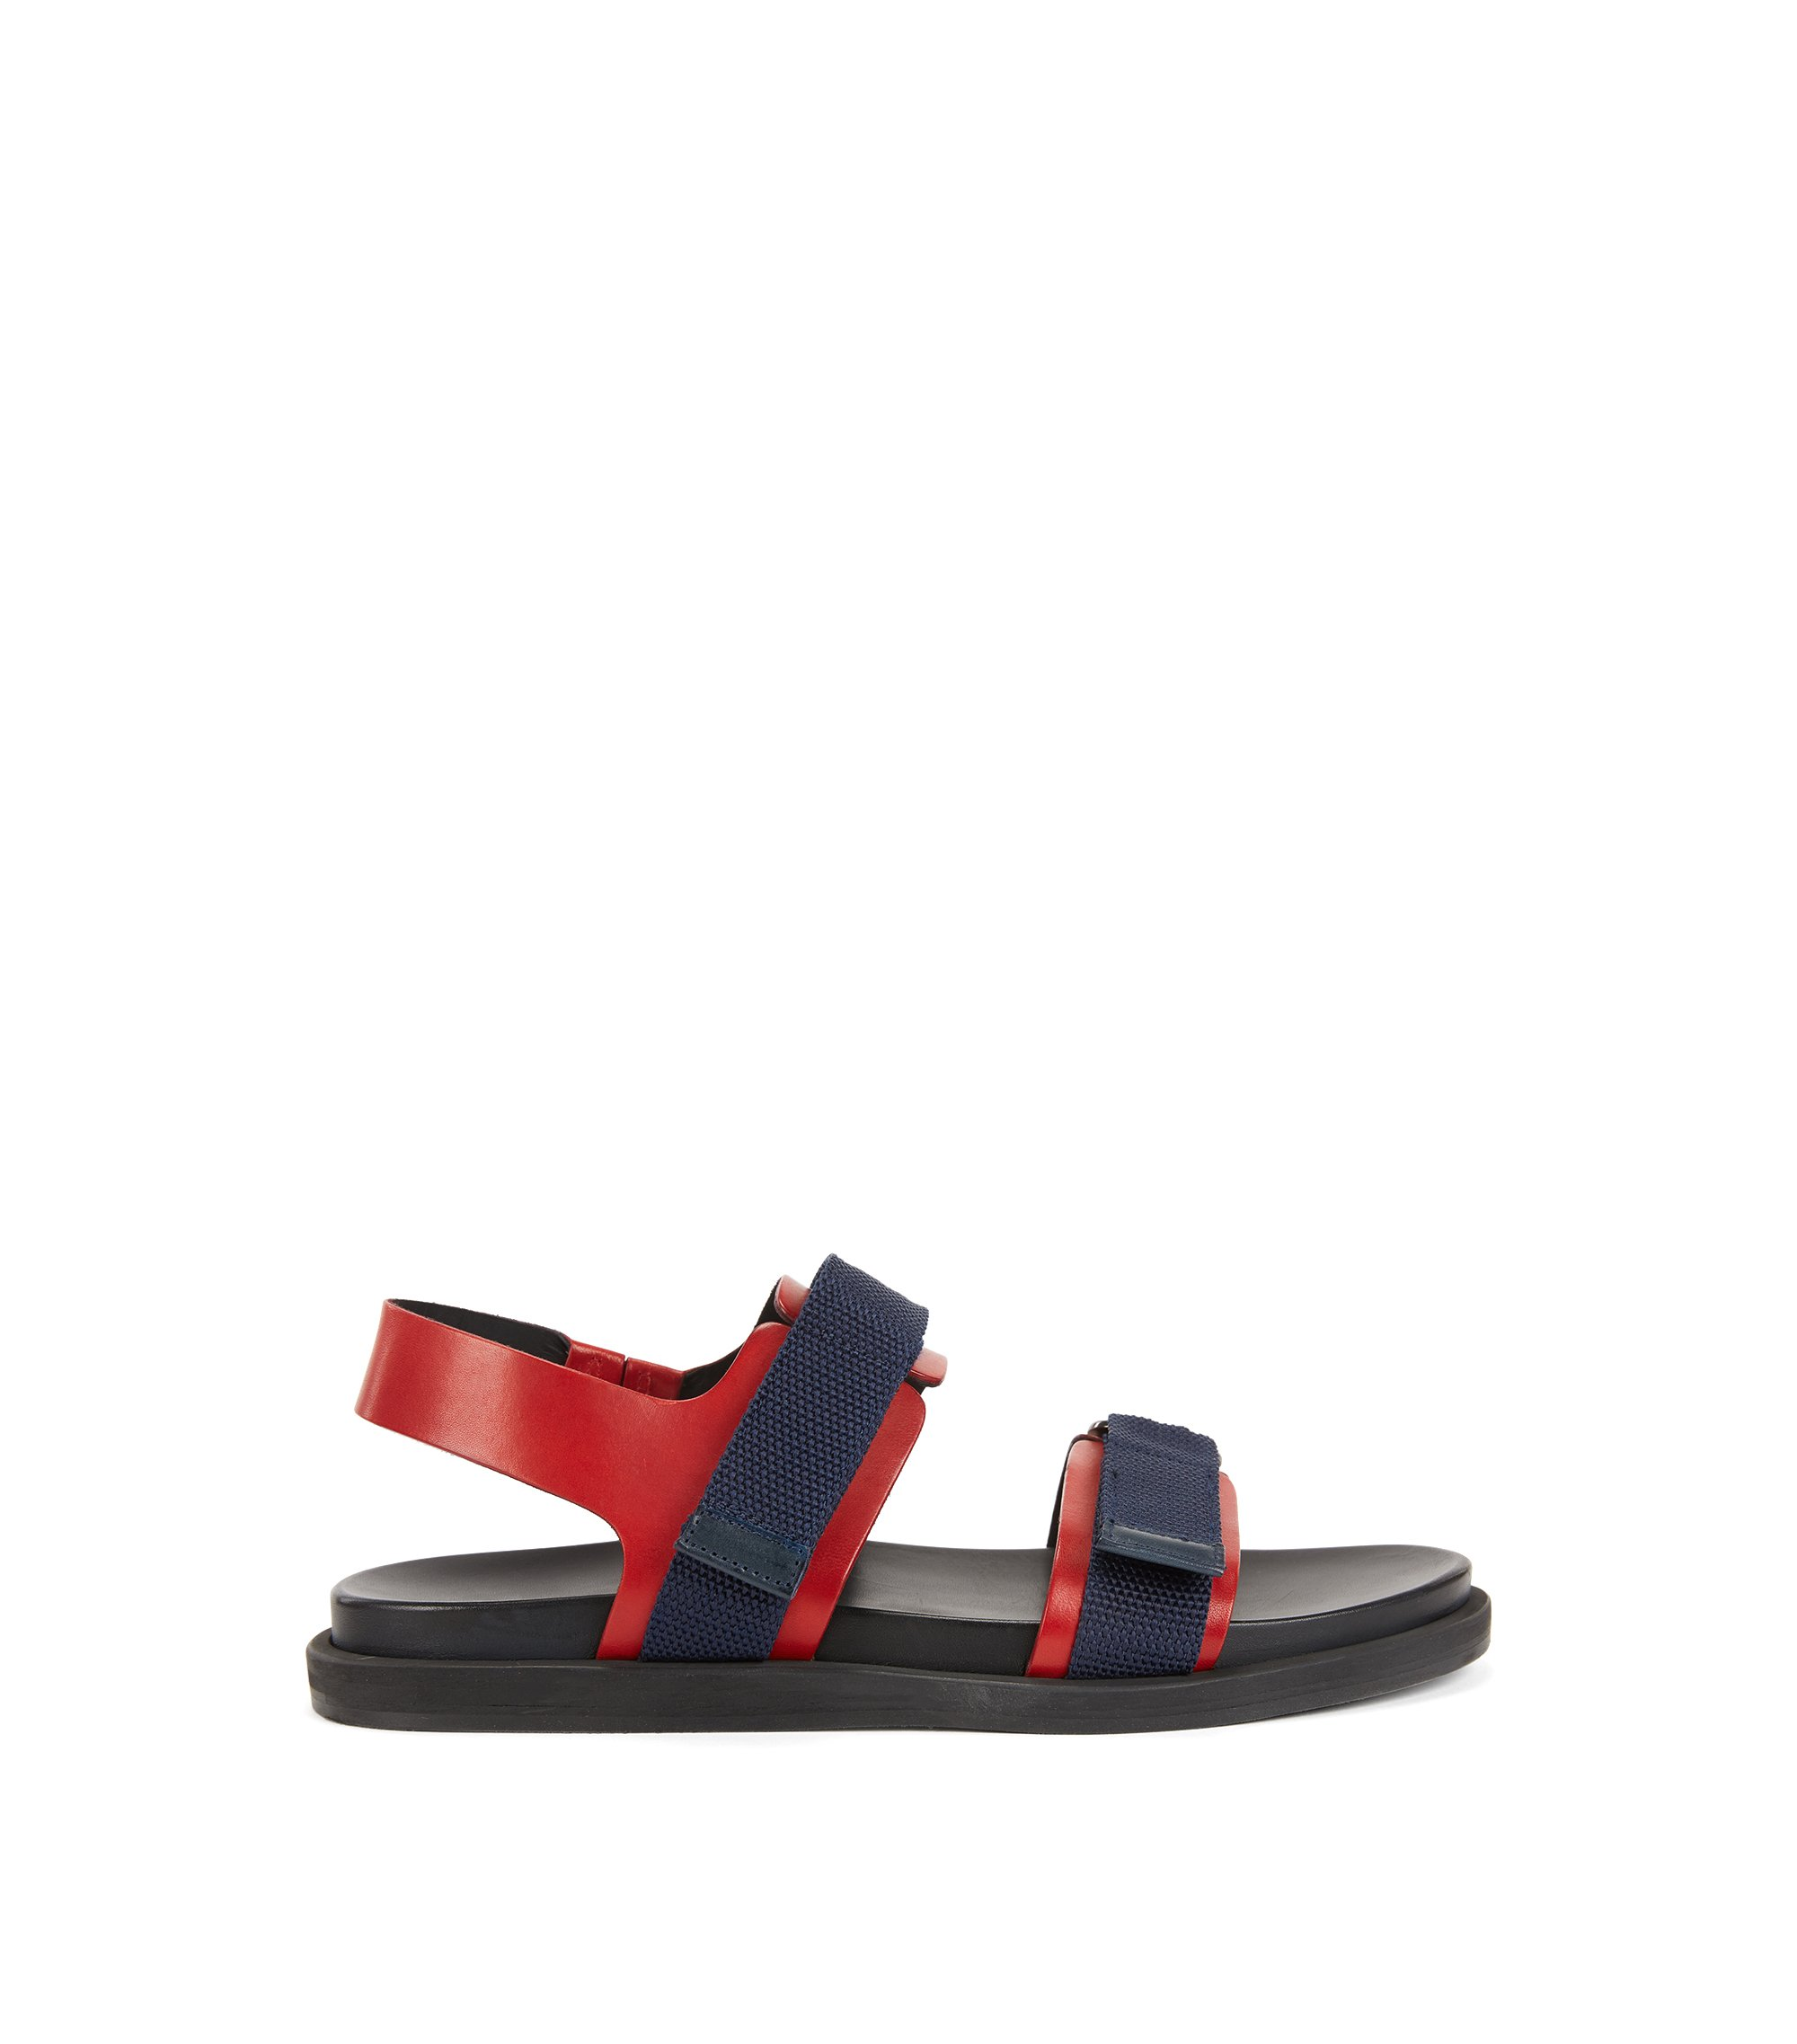 Leather Sandal | Hamptons Sand Vlmx, Red